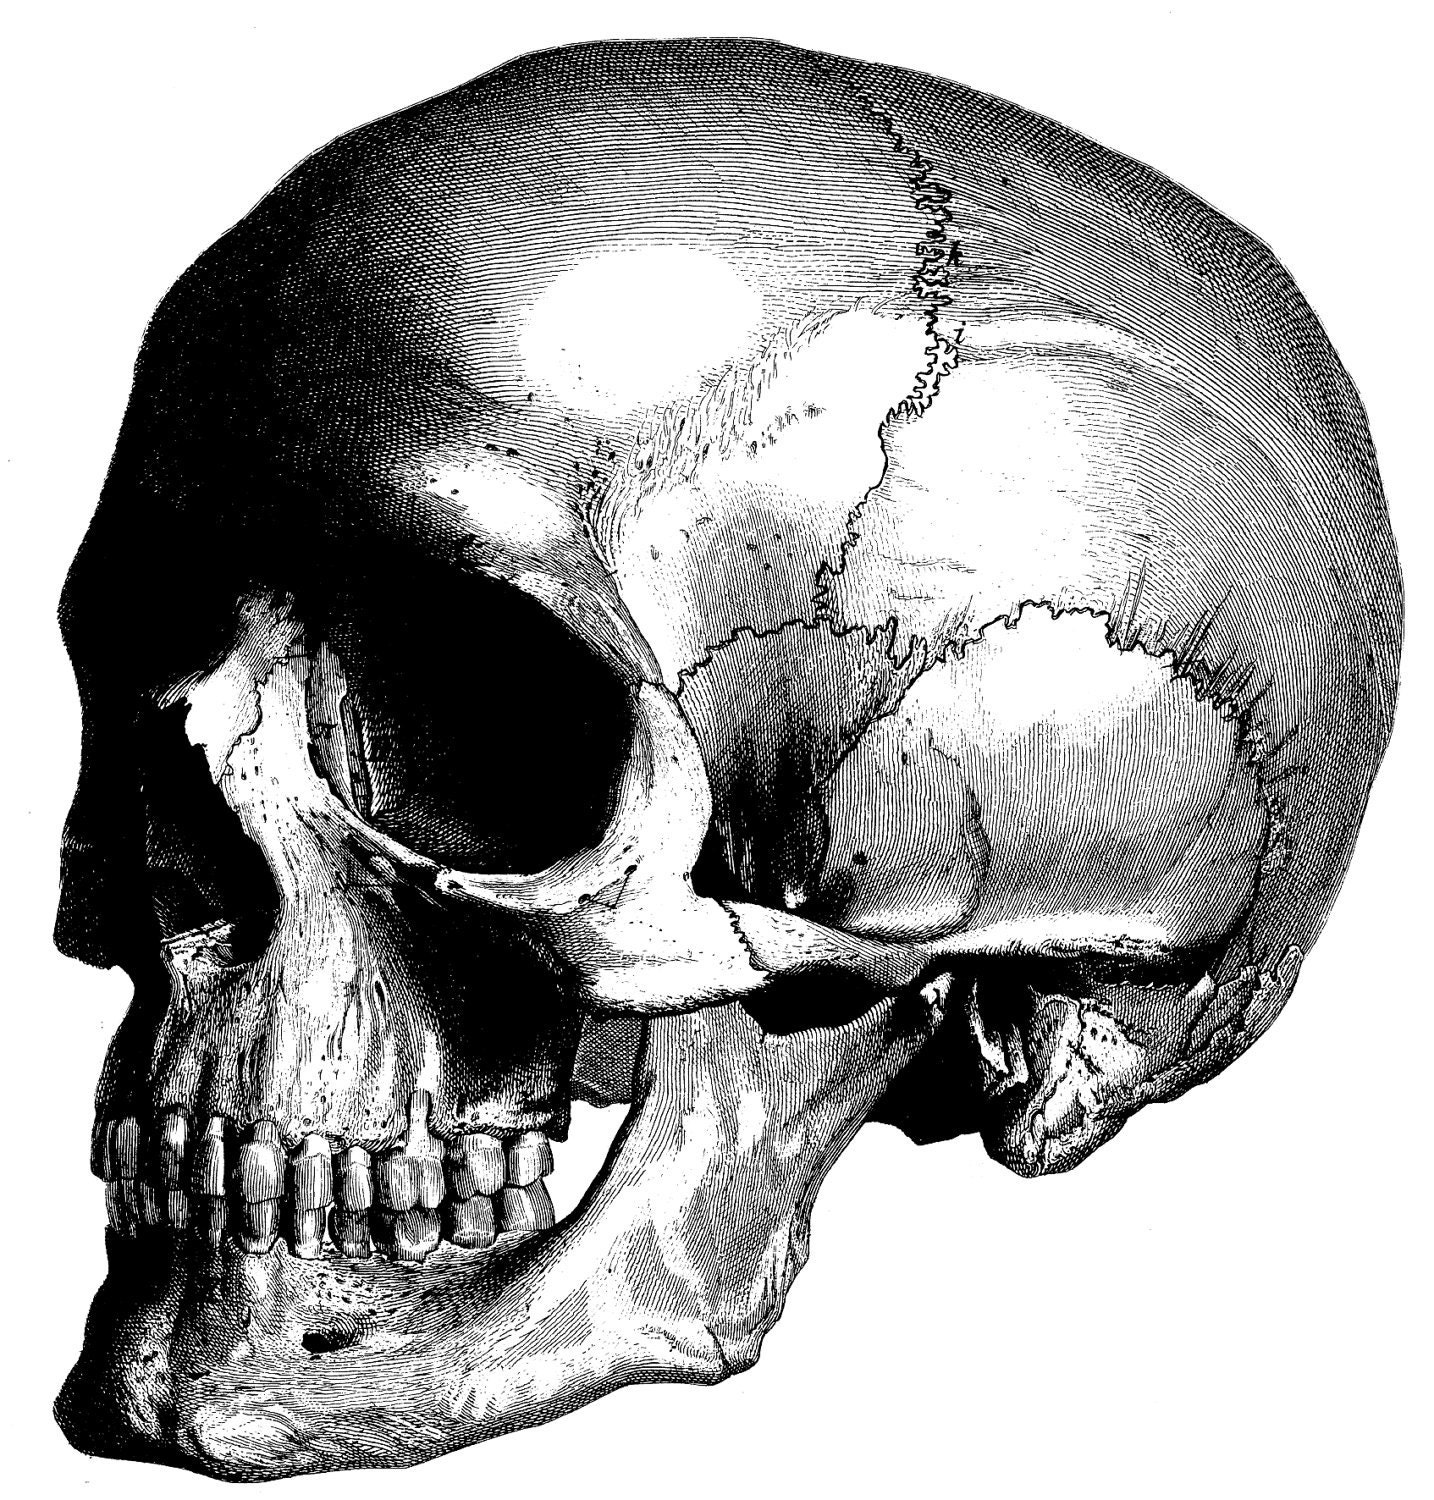 Human Anatomy the human skull Old medical atlas illustration